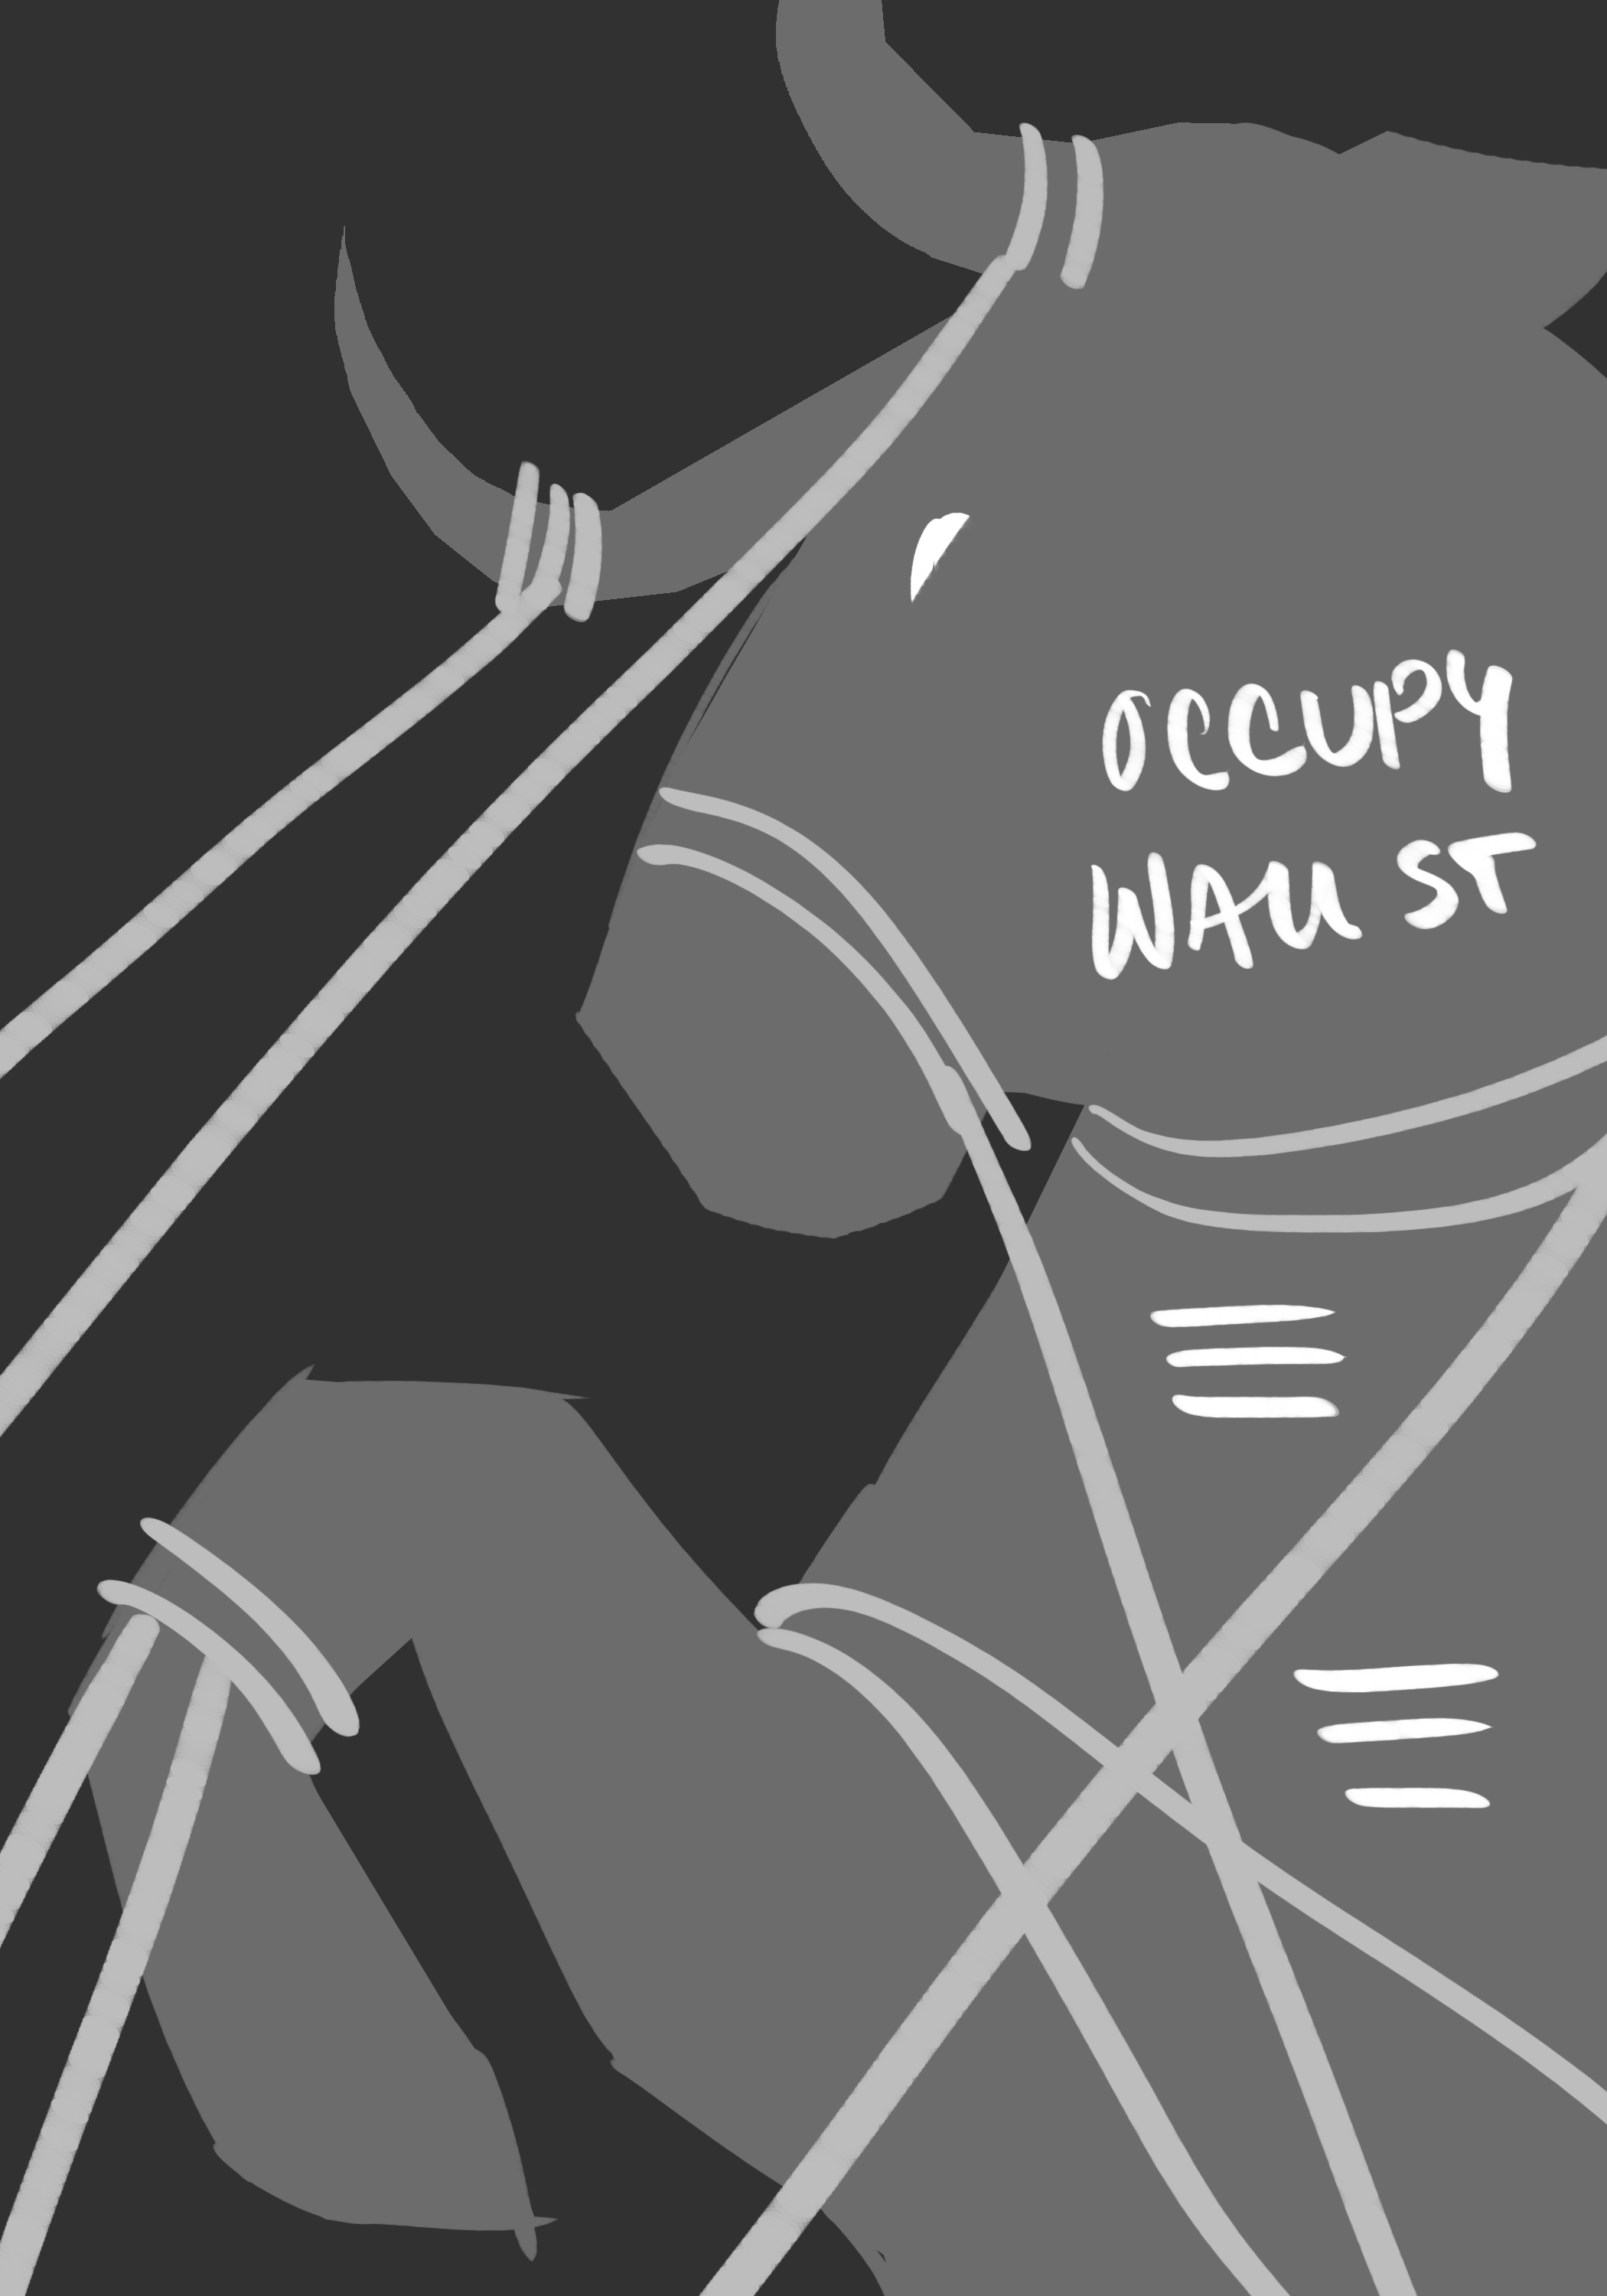 wallstreet-comp1.jpg